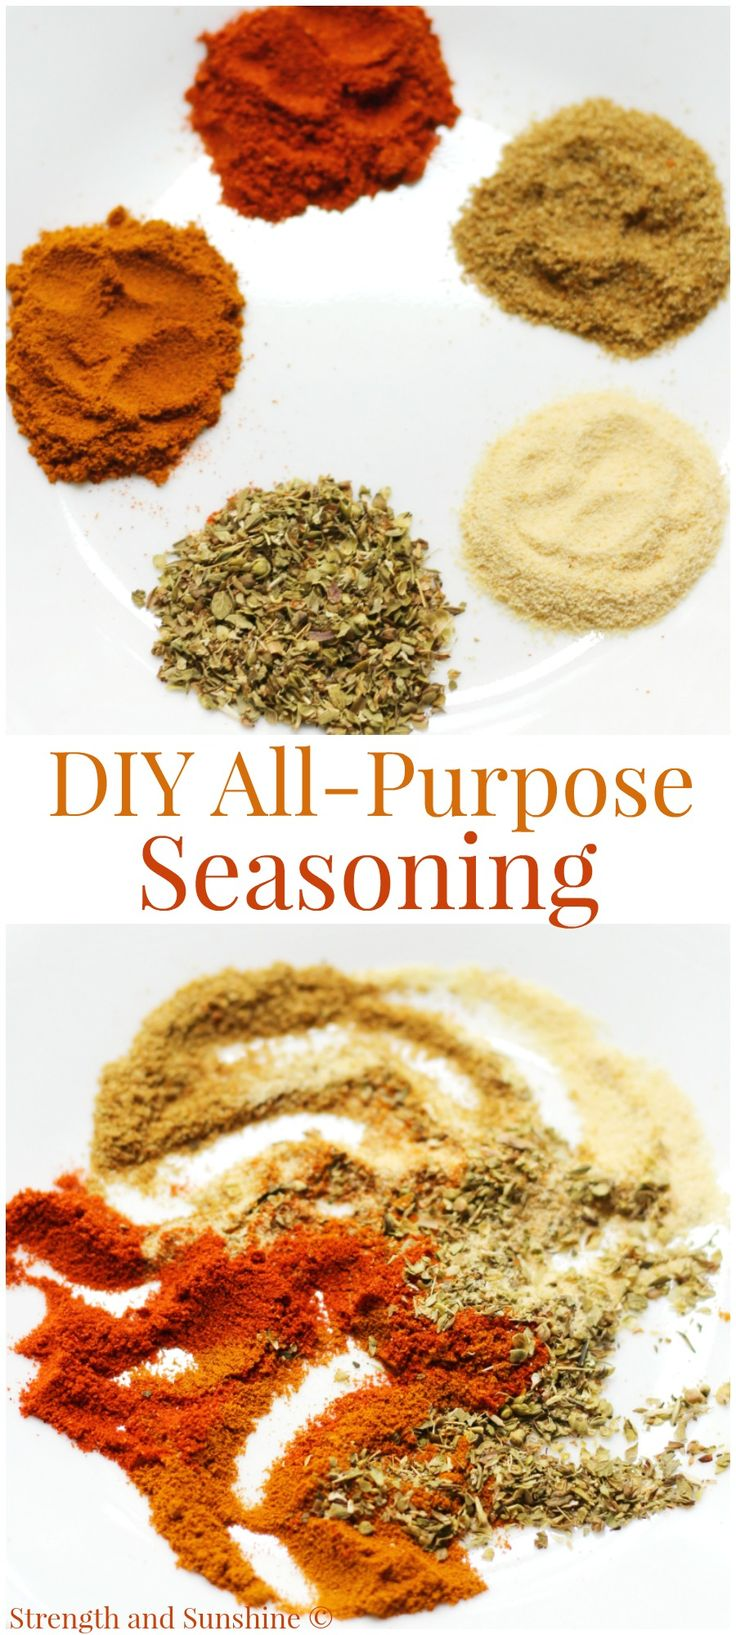 DIY All-Purpose Seasoning + Pantry Supplies Storage Hacks | Strength and Sunshine @RebeccaGF666 A perfect DIY All-Purpose Seasoning recipe, gluten-free, salt and sugar-free, that will spice up any dish! Plus some trendy hacks for traveling, transporting, storing and organizing all you small pantry cooking and baking essentials! #storagewithstyle #Pmedia @creativeoption ad